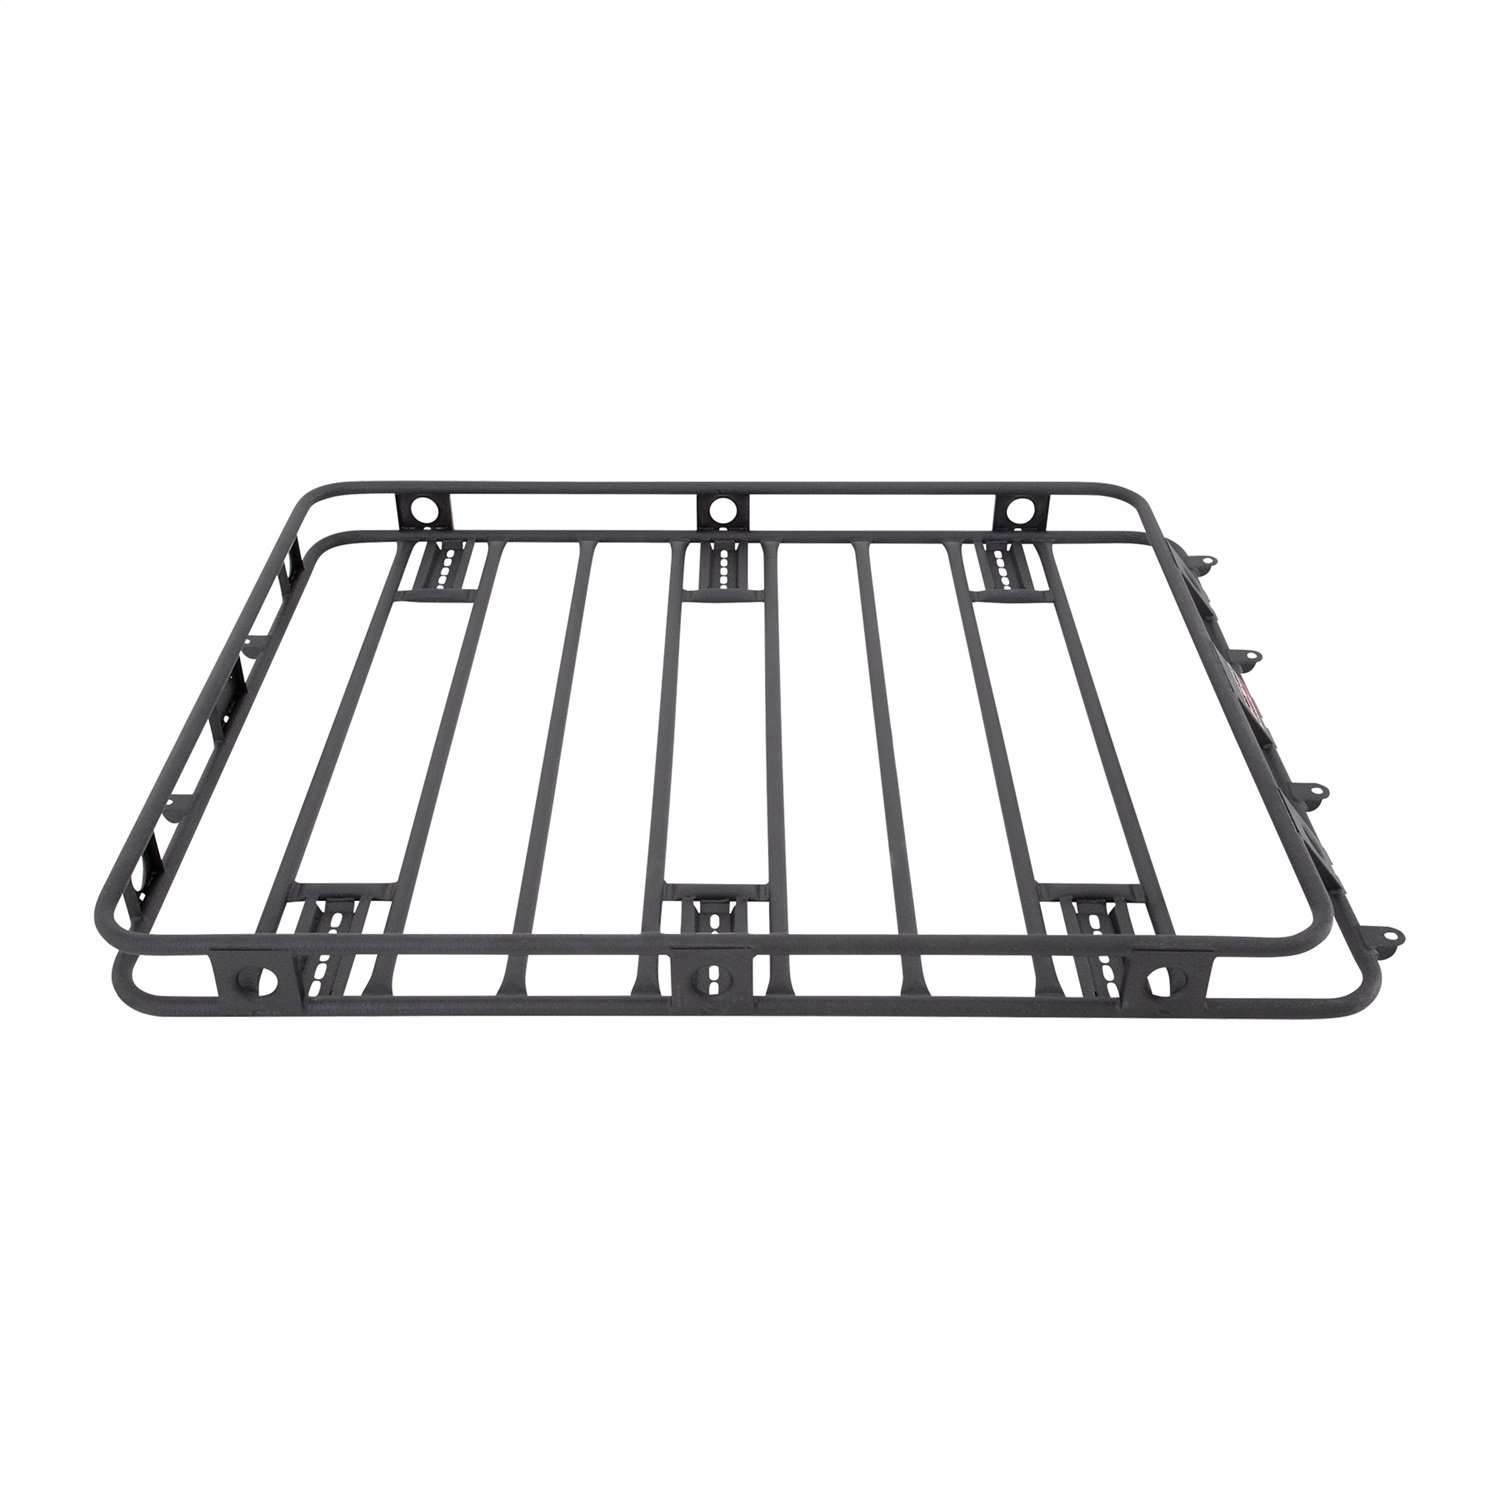 Smittybilt 40504 Roof Rack by Smittybilt